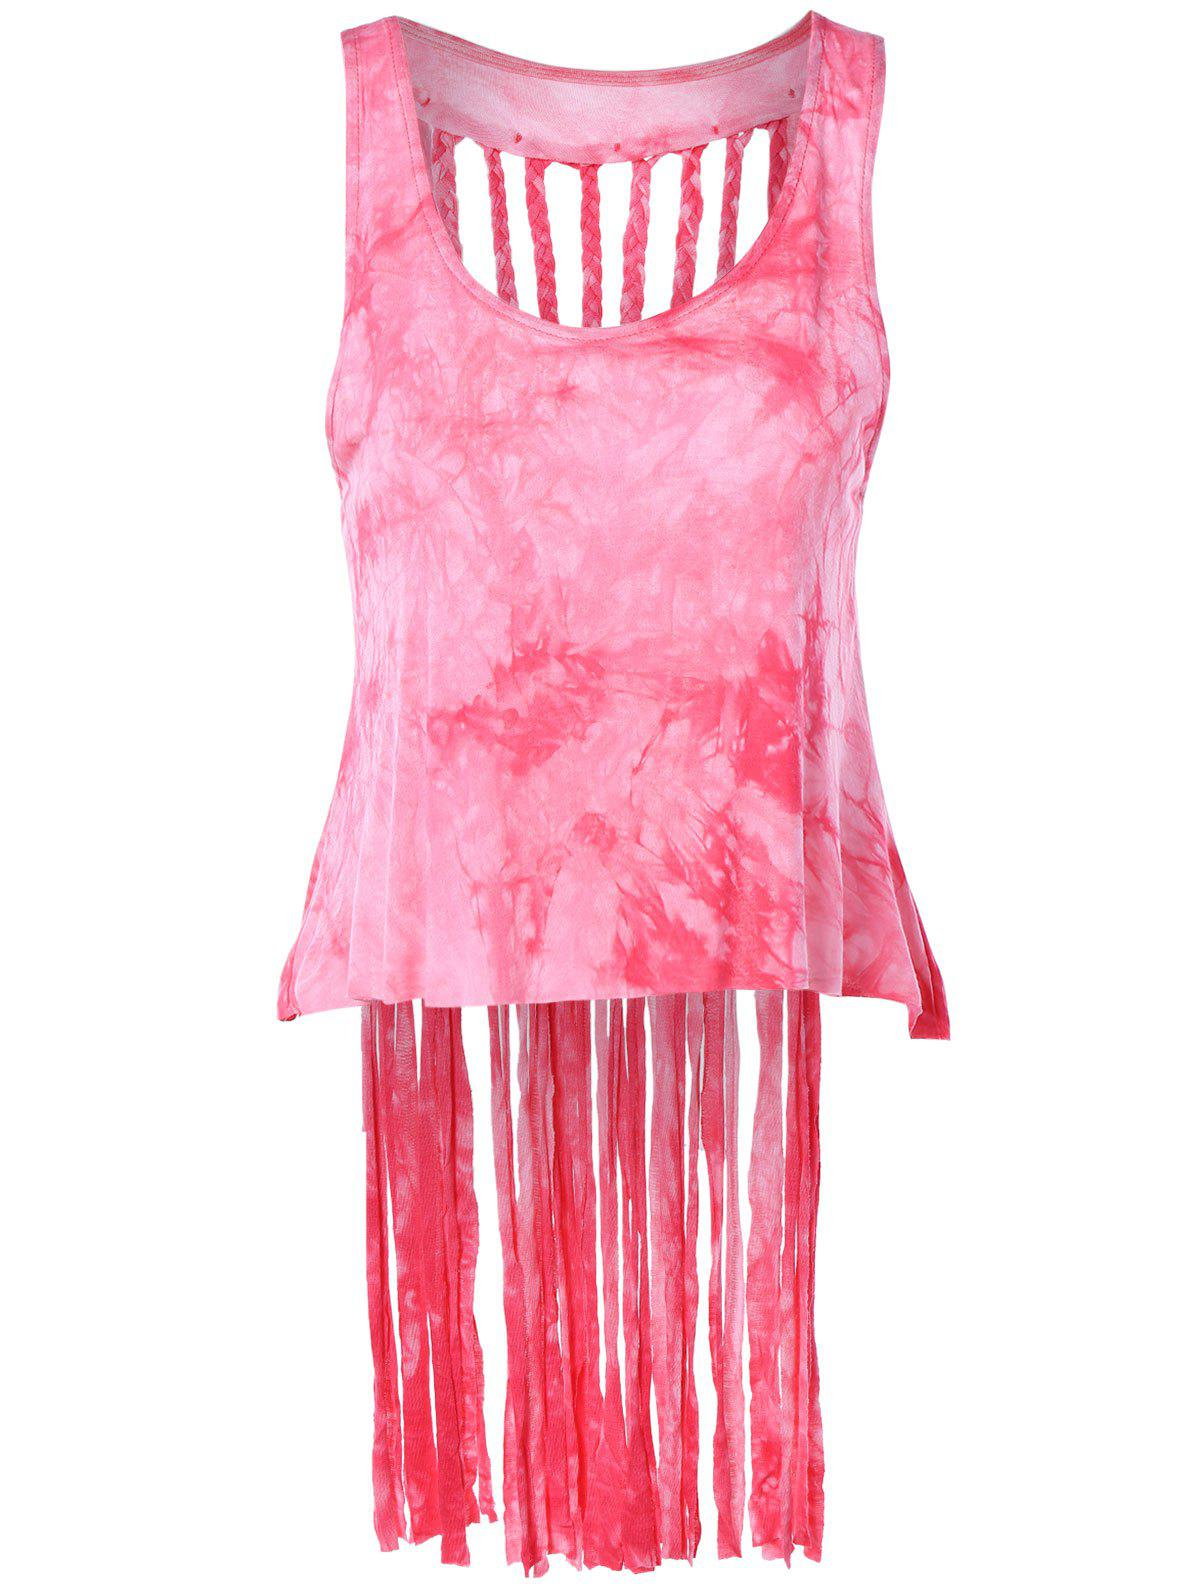 Stylish Women's Scoop Neck Weave Fringe Tank Top - ROSE ONE SIZE(FIT SIZE XS TO M)